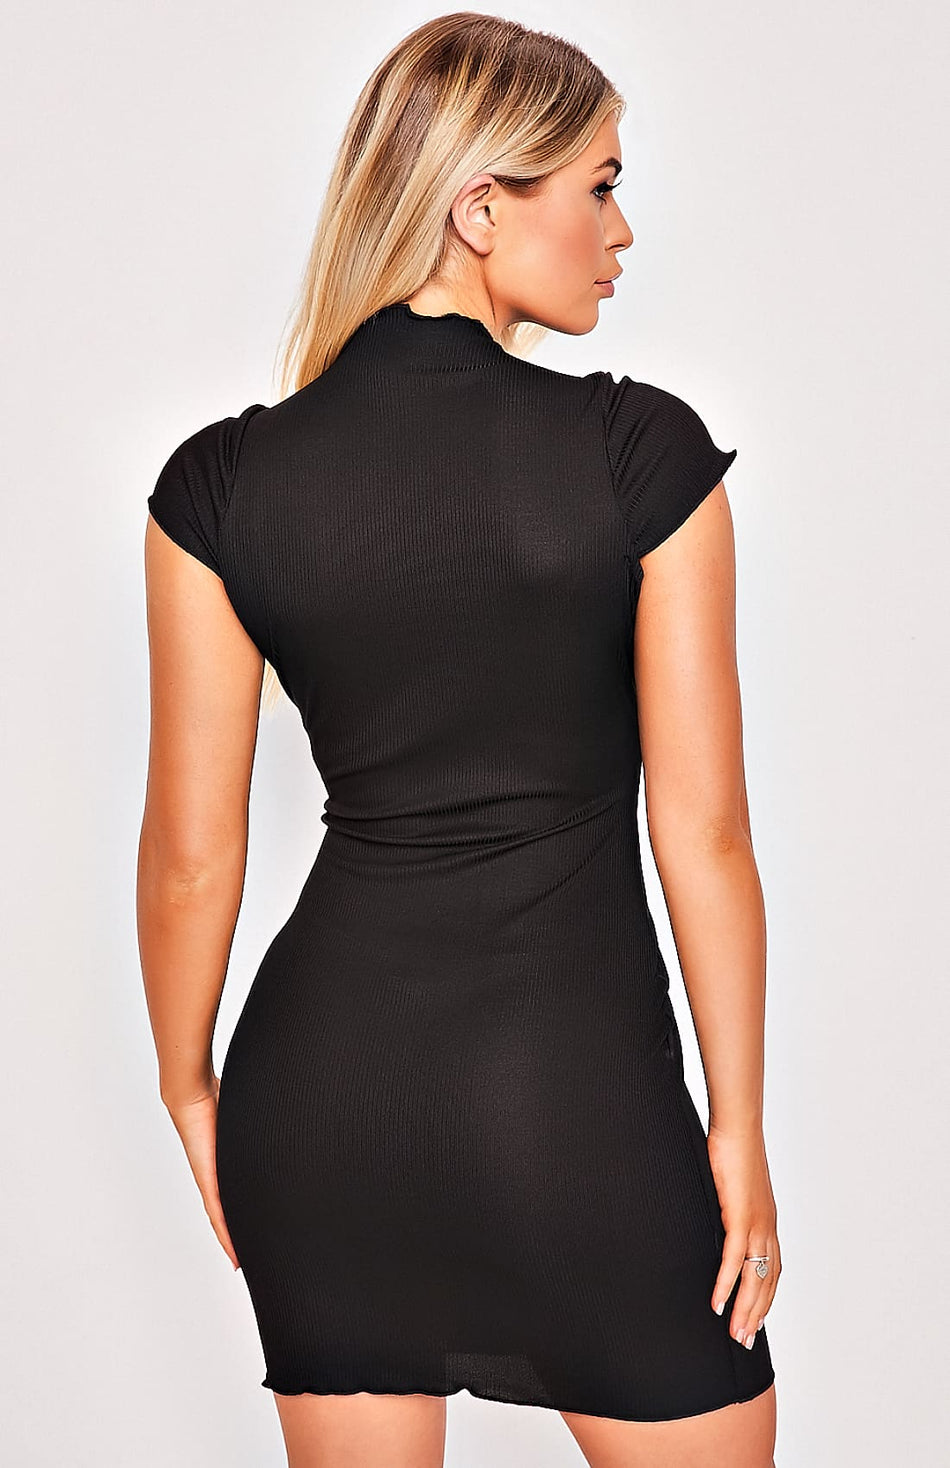 Black Stretch Knit High Neck Mini Dress